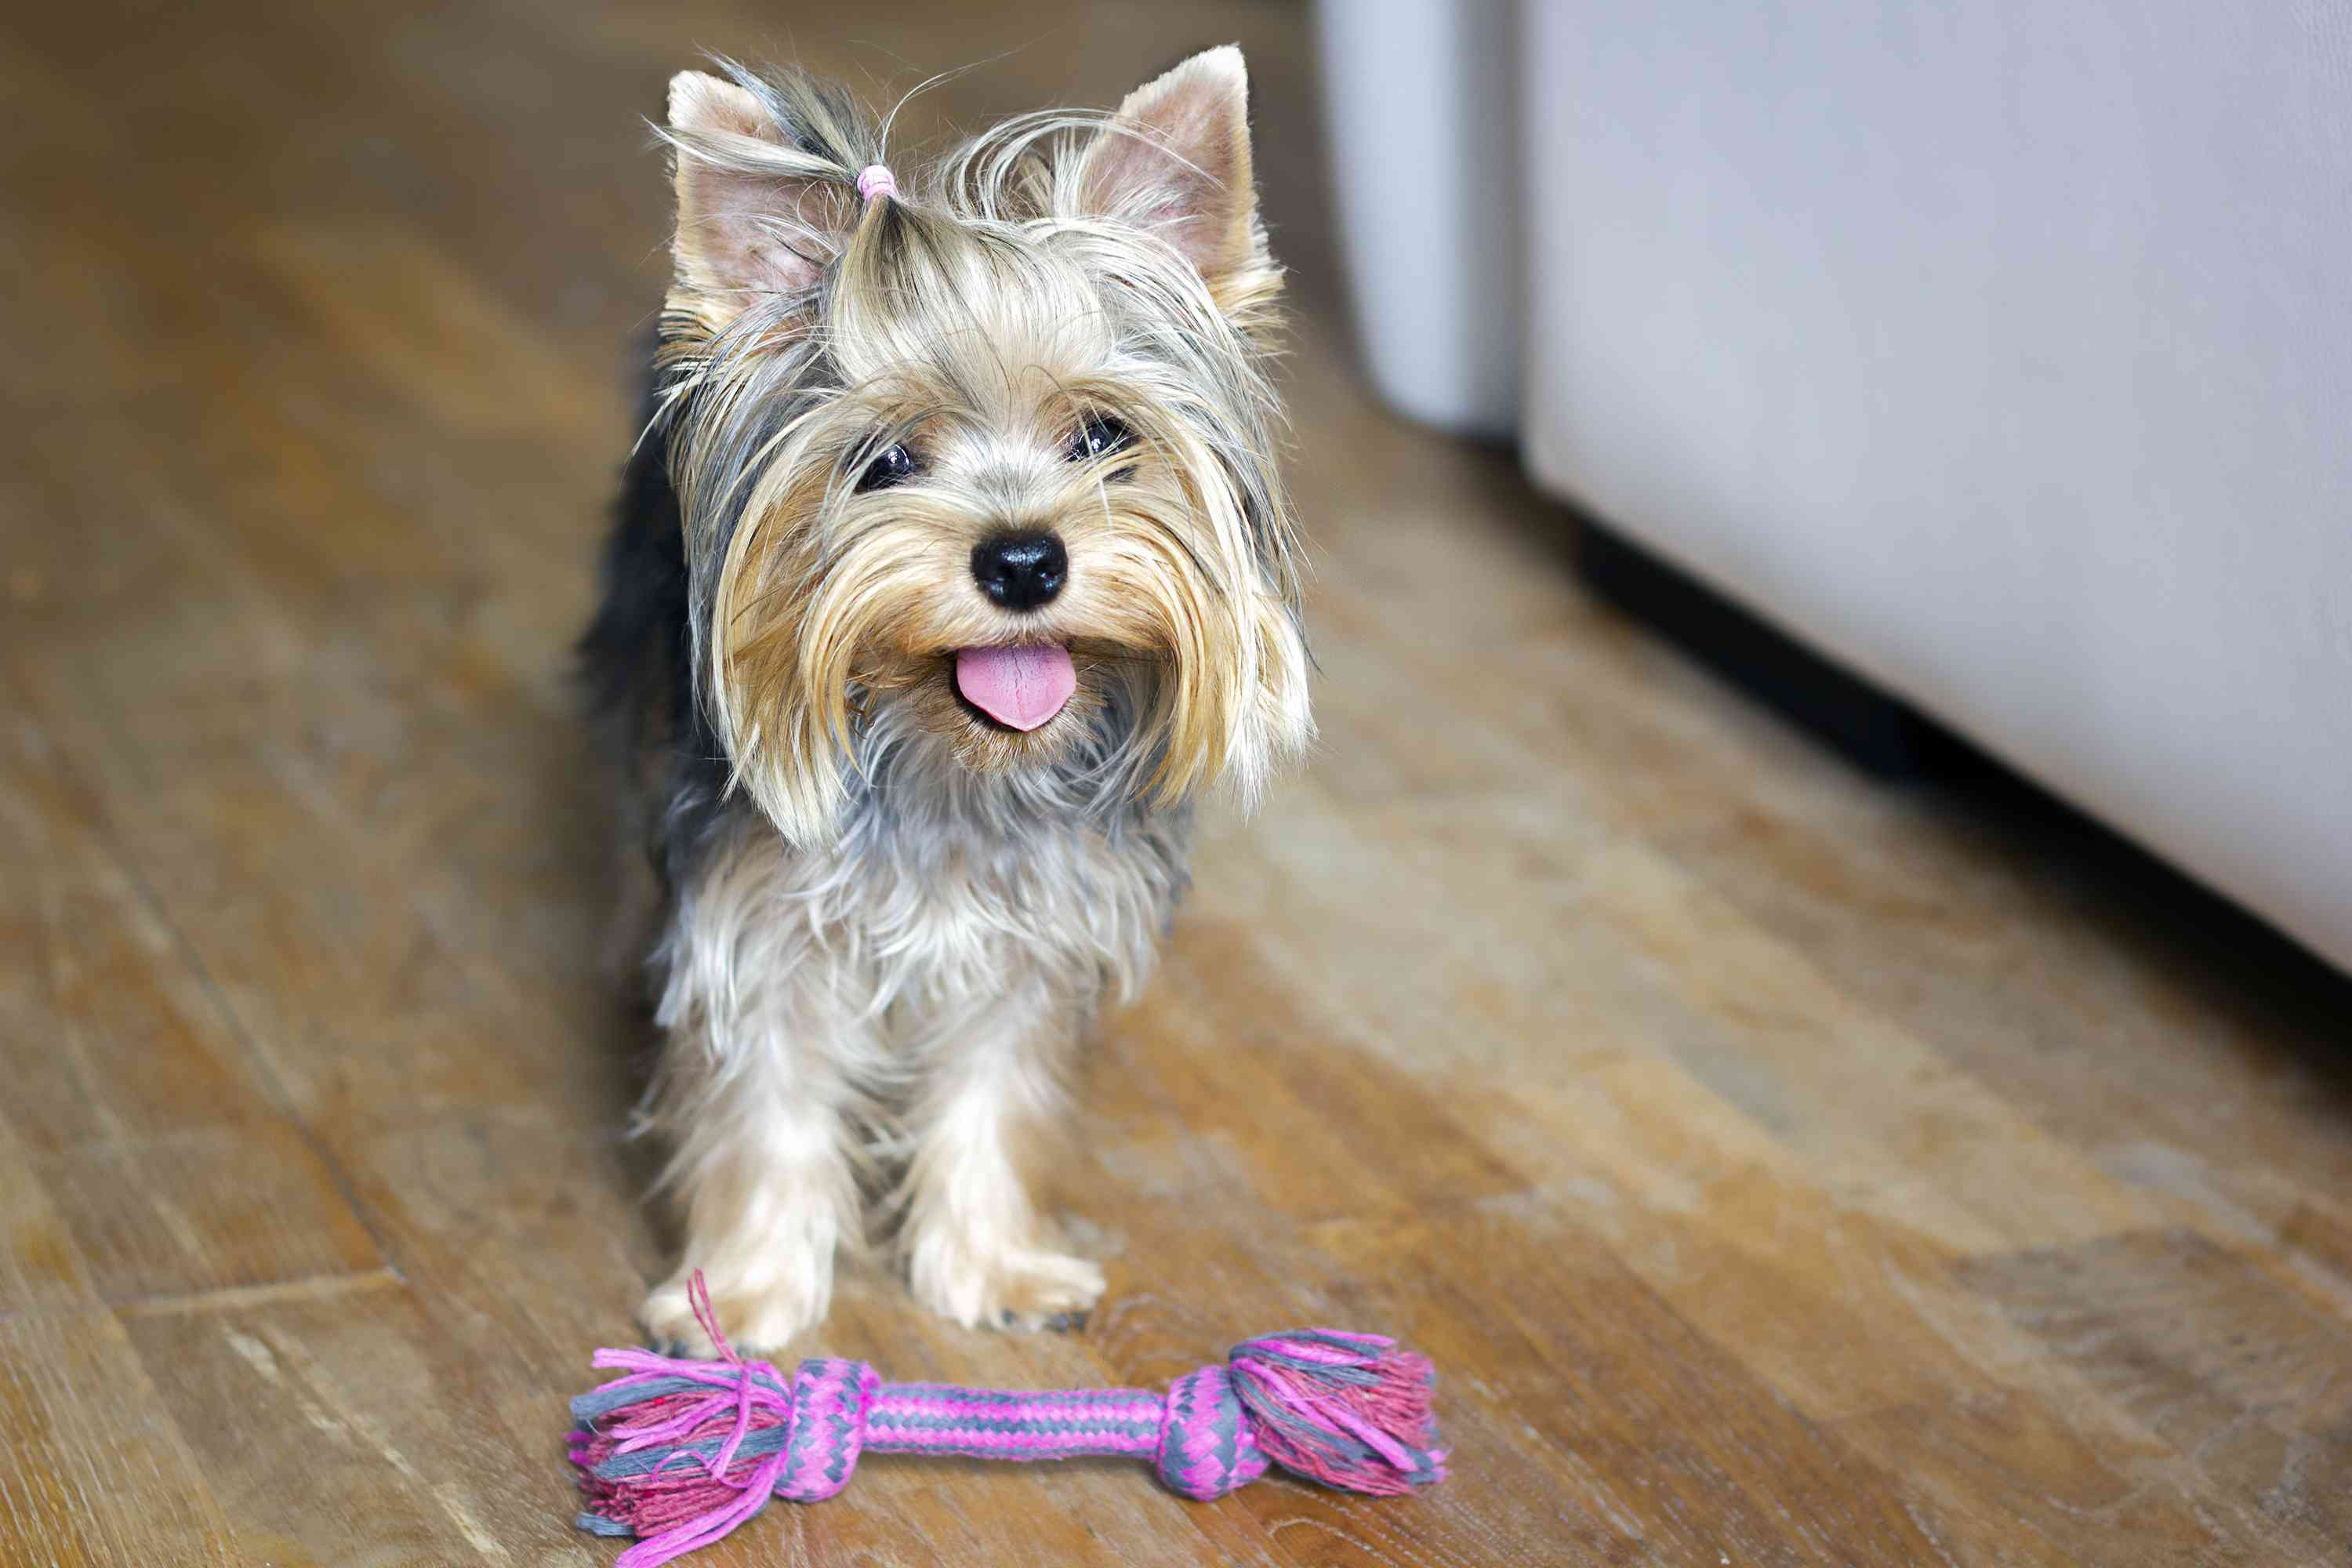 Dog standing over colorful toy